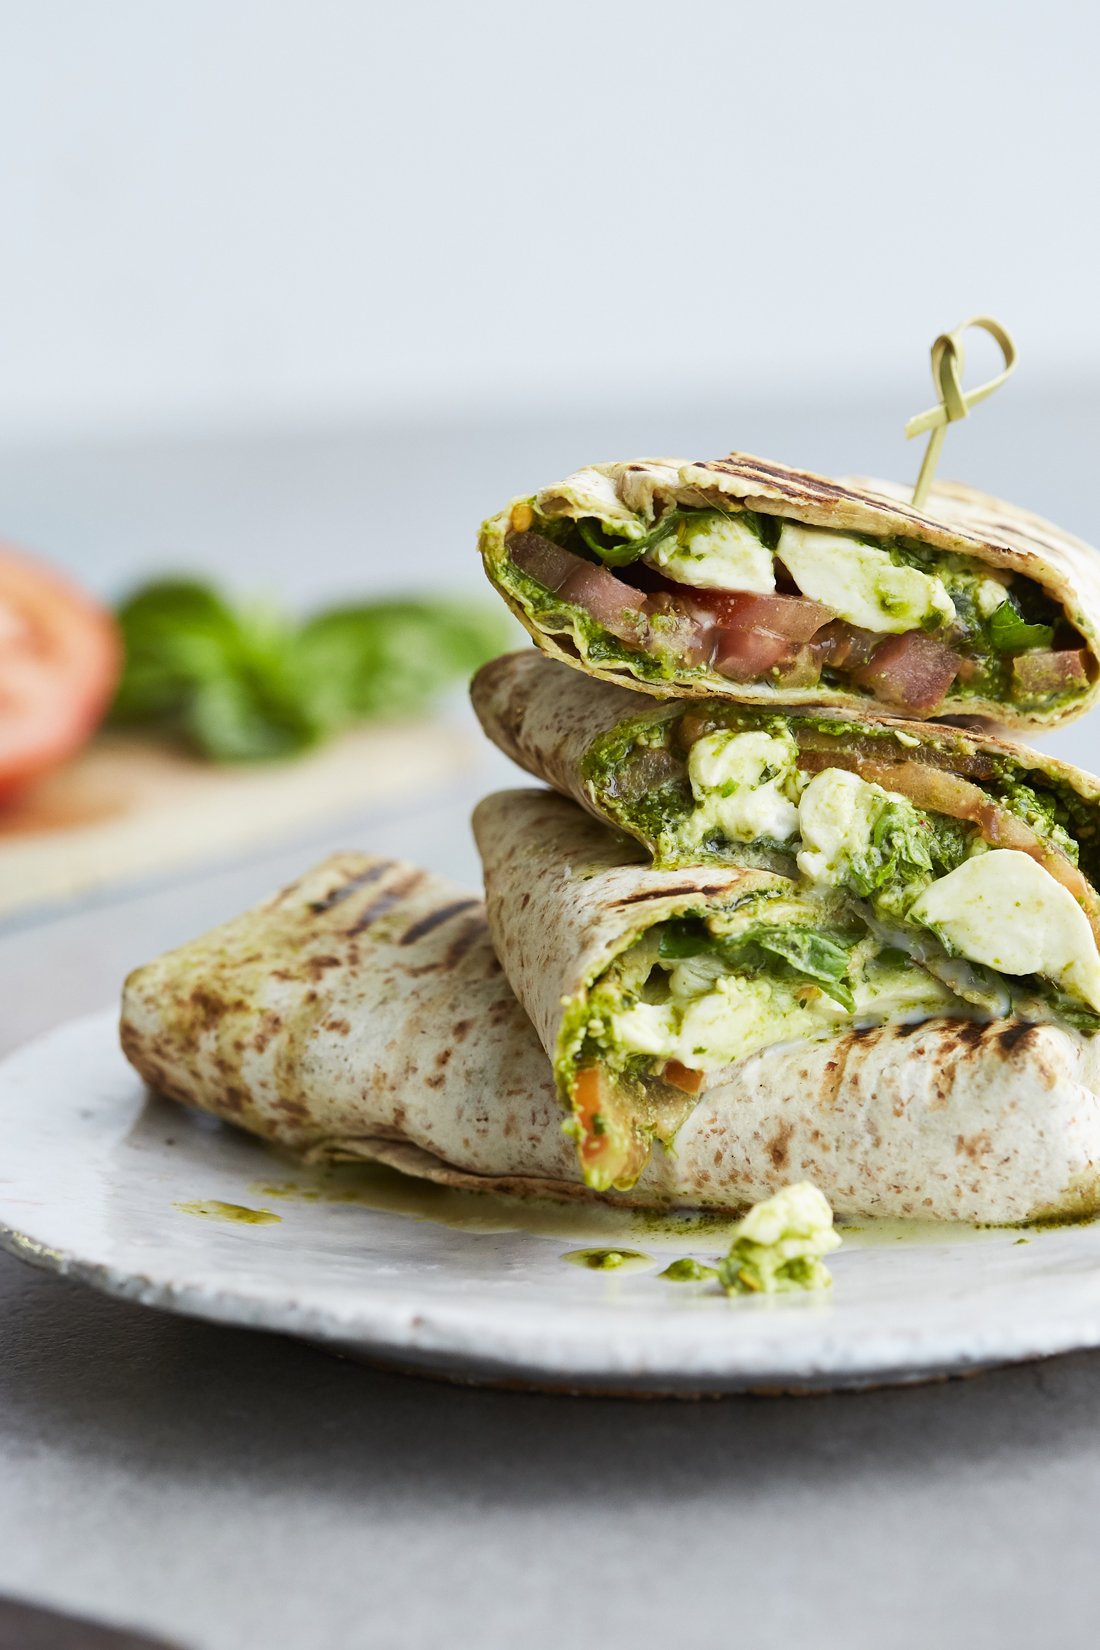 MICHELLE PARKIN PHOTOGRAPHY__HIGH RES_BASIL & CHILLI _CAPRESE WRAP_PESTO PRINCESS_EmptyName 21